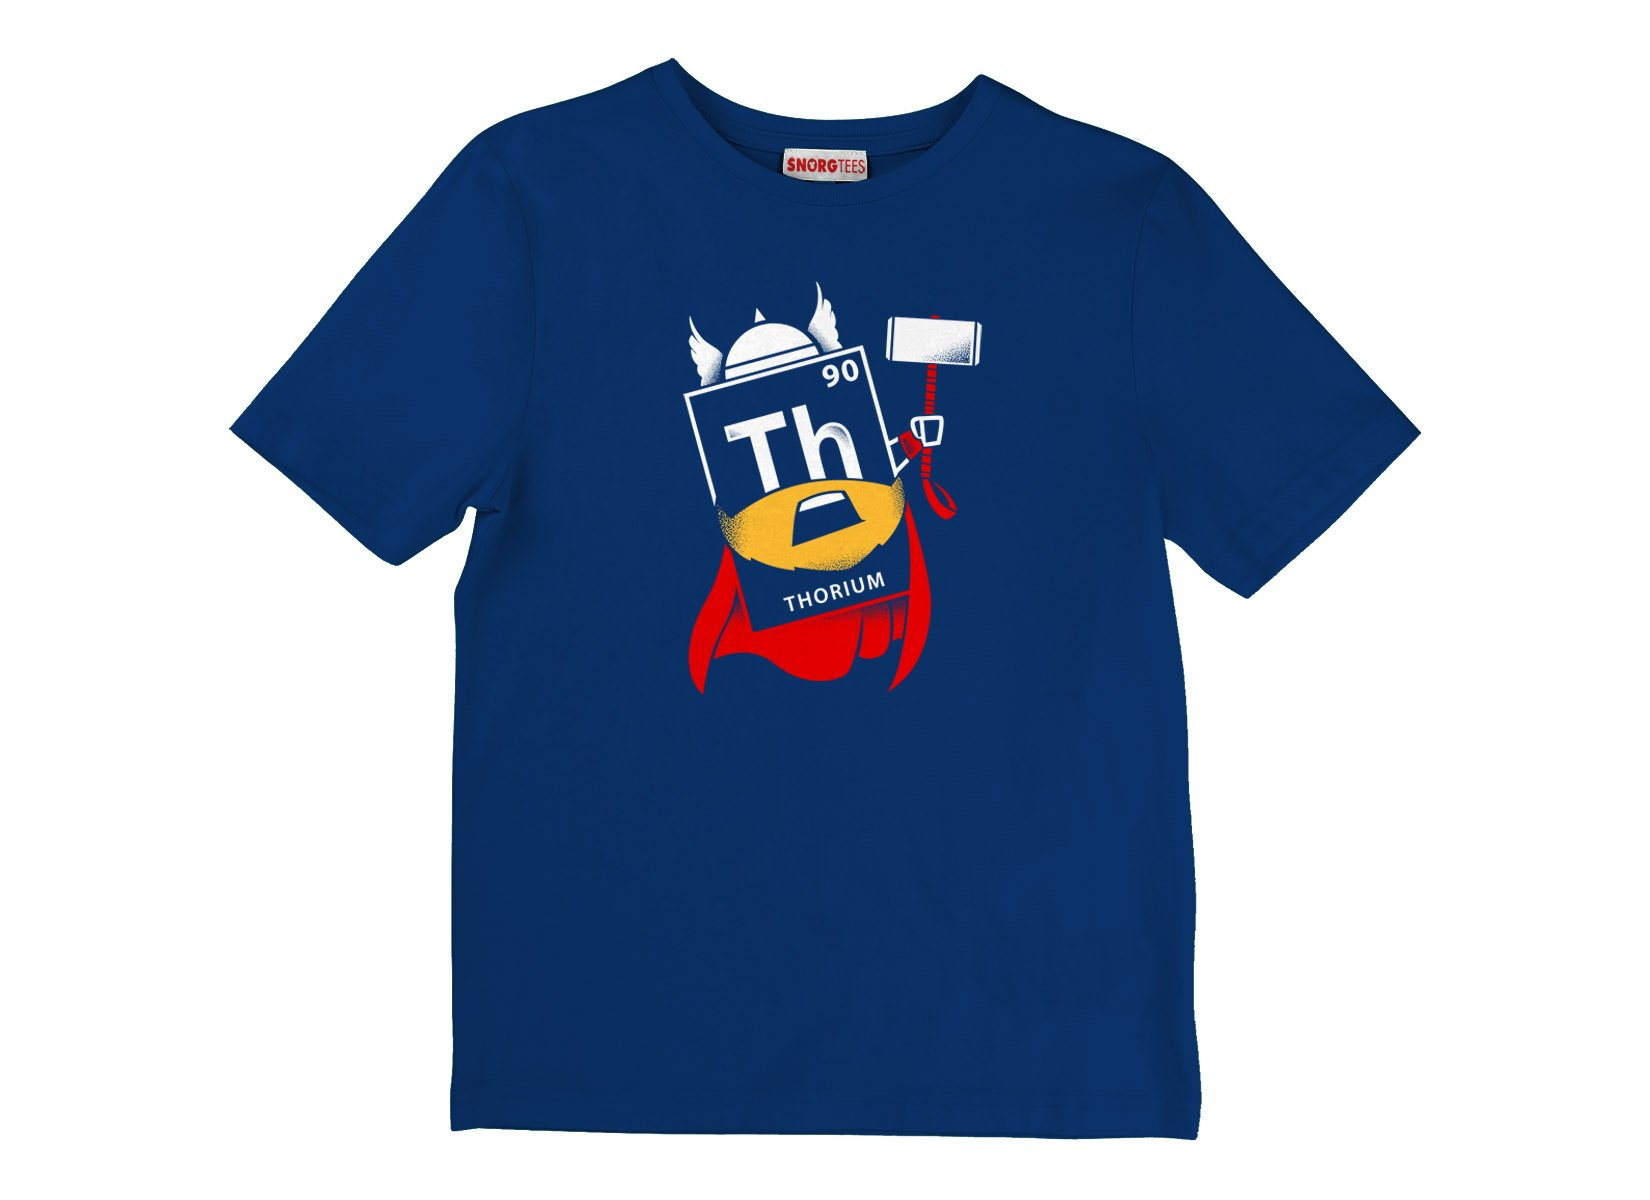 Thorium on Kids T-Shirt